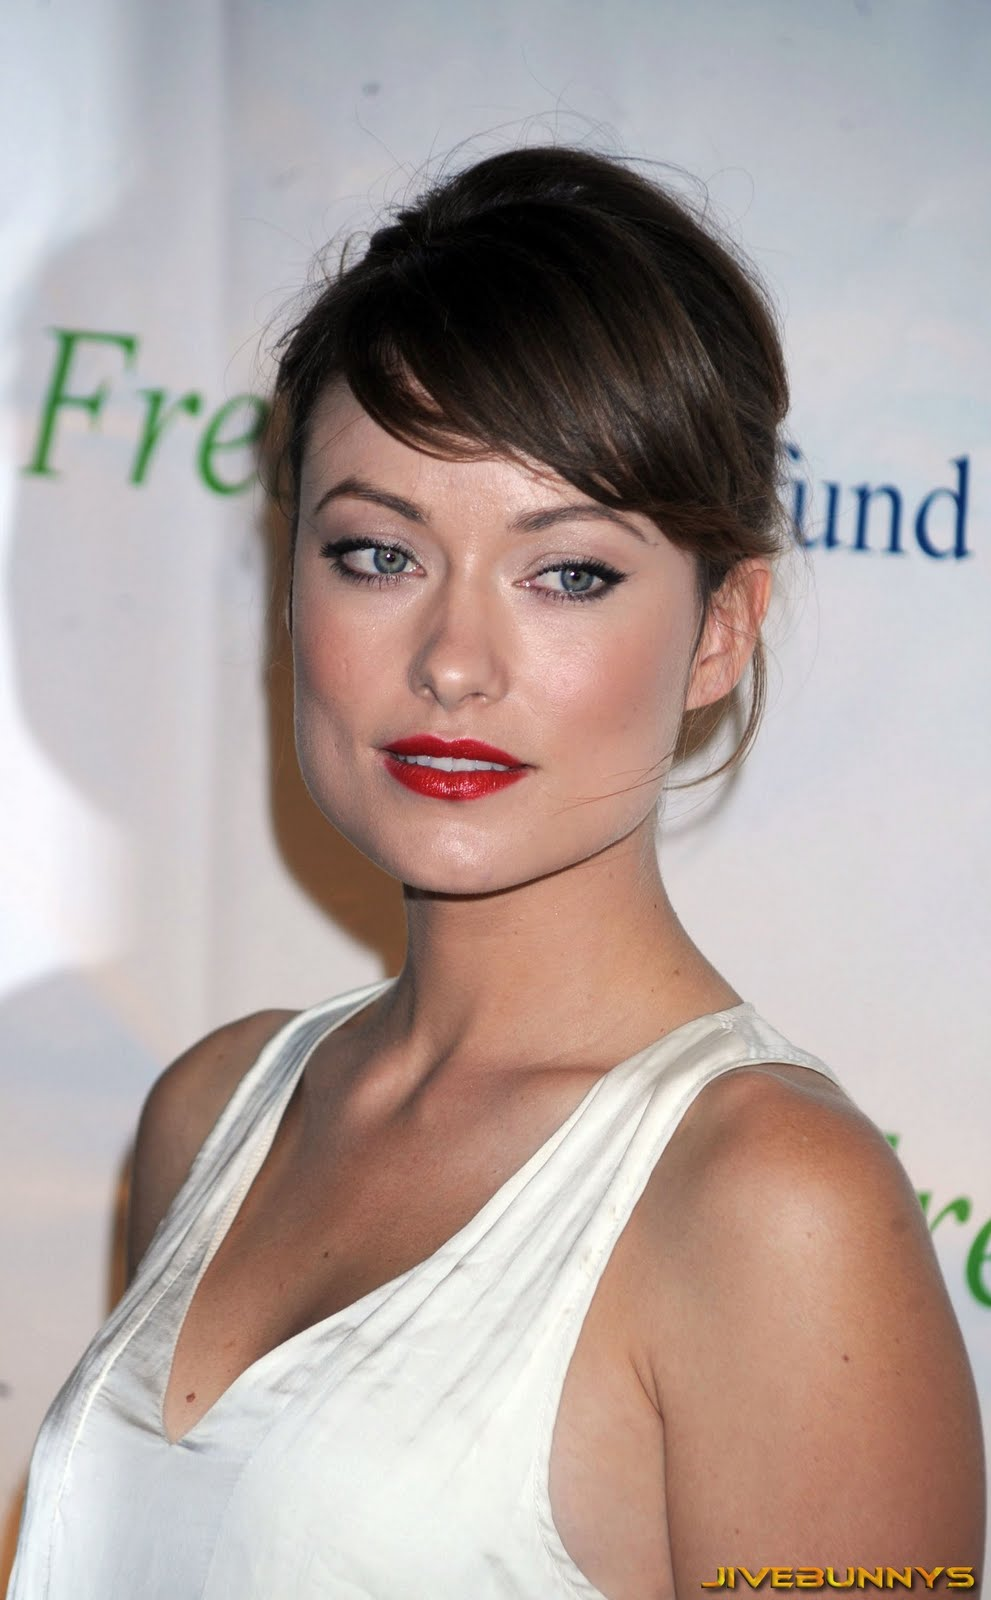 Olivia Wilde Profile And New Pictures 2013: Olivia Wilde Special Pictures (6)